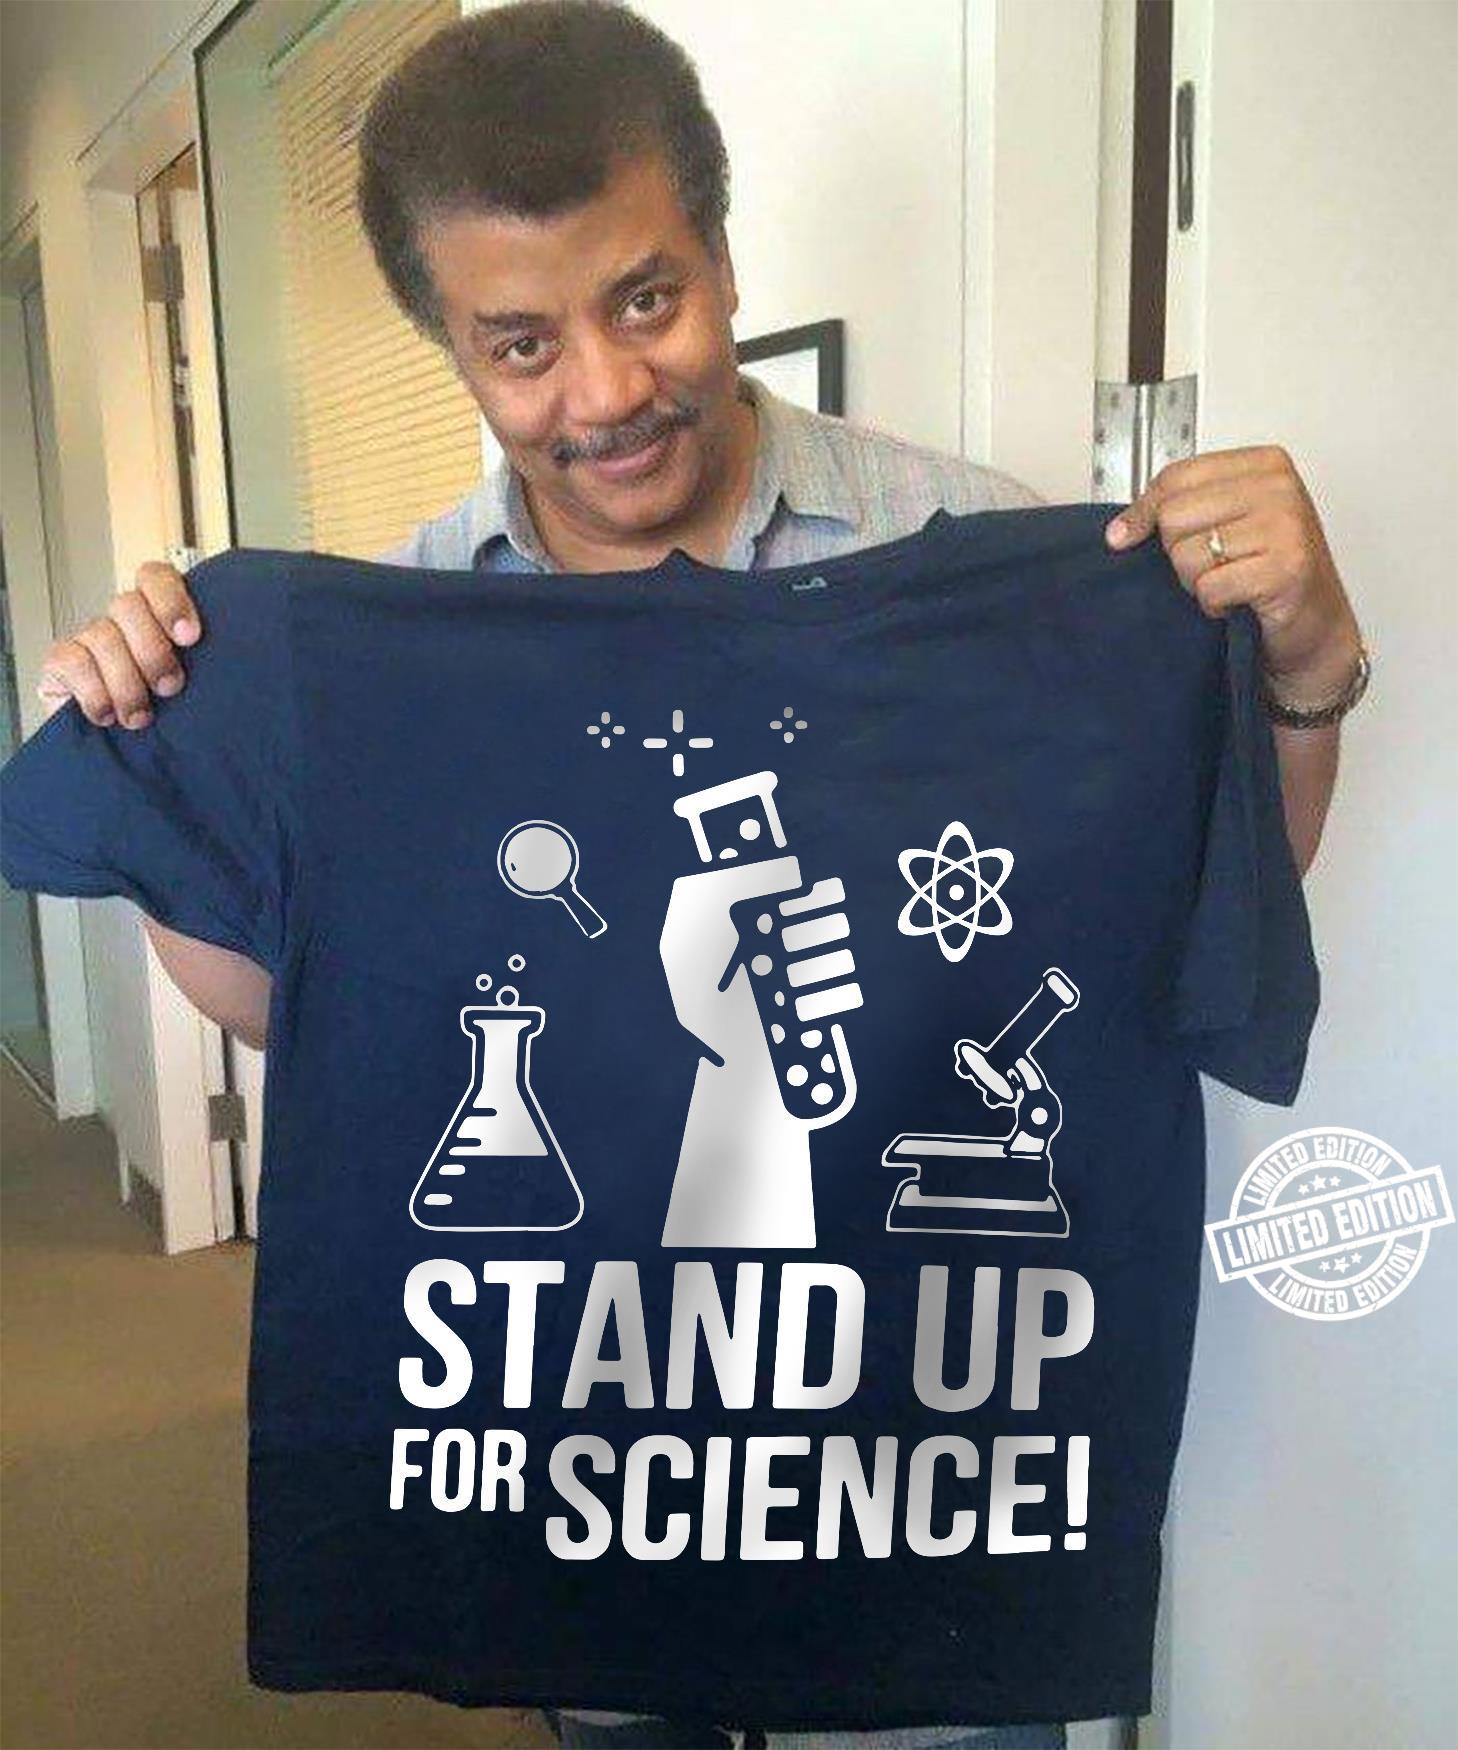 Stand up for science shirt